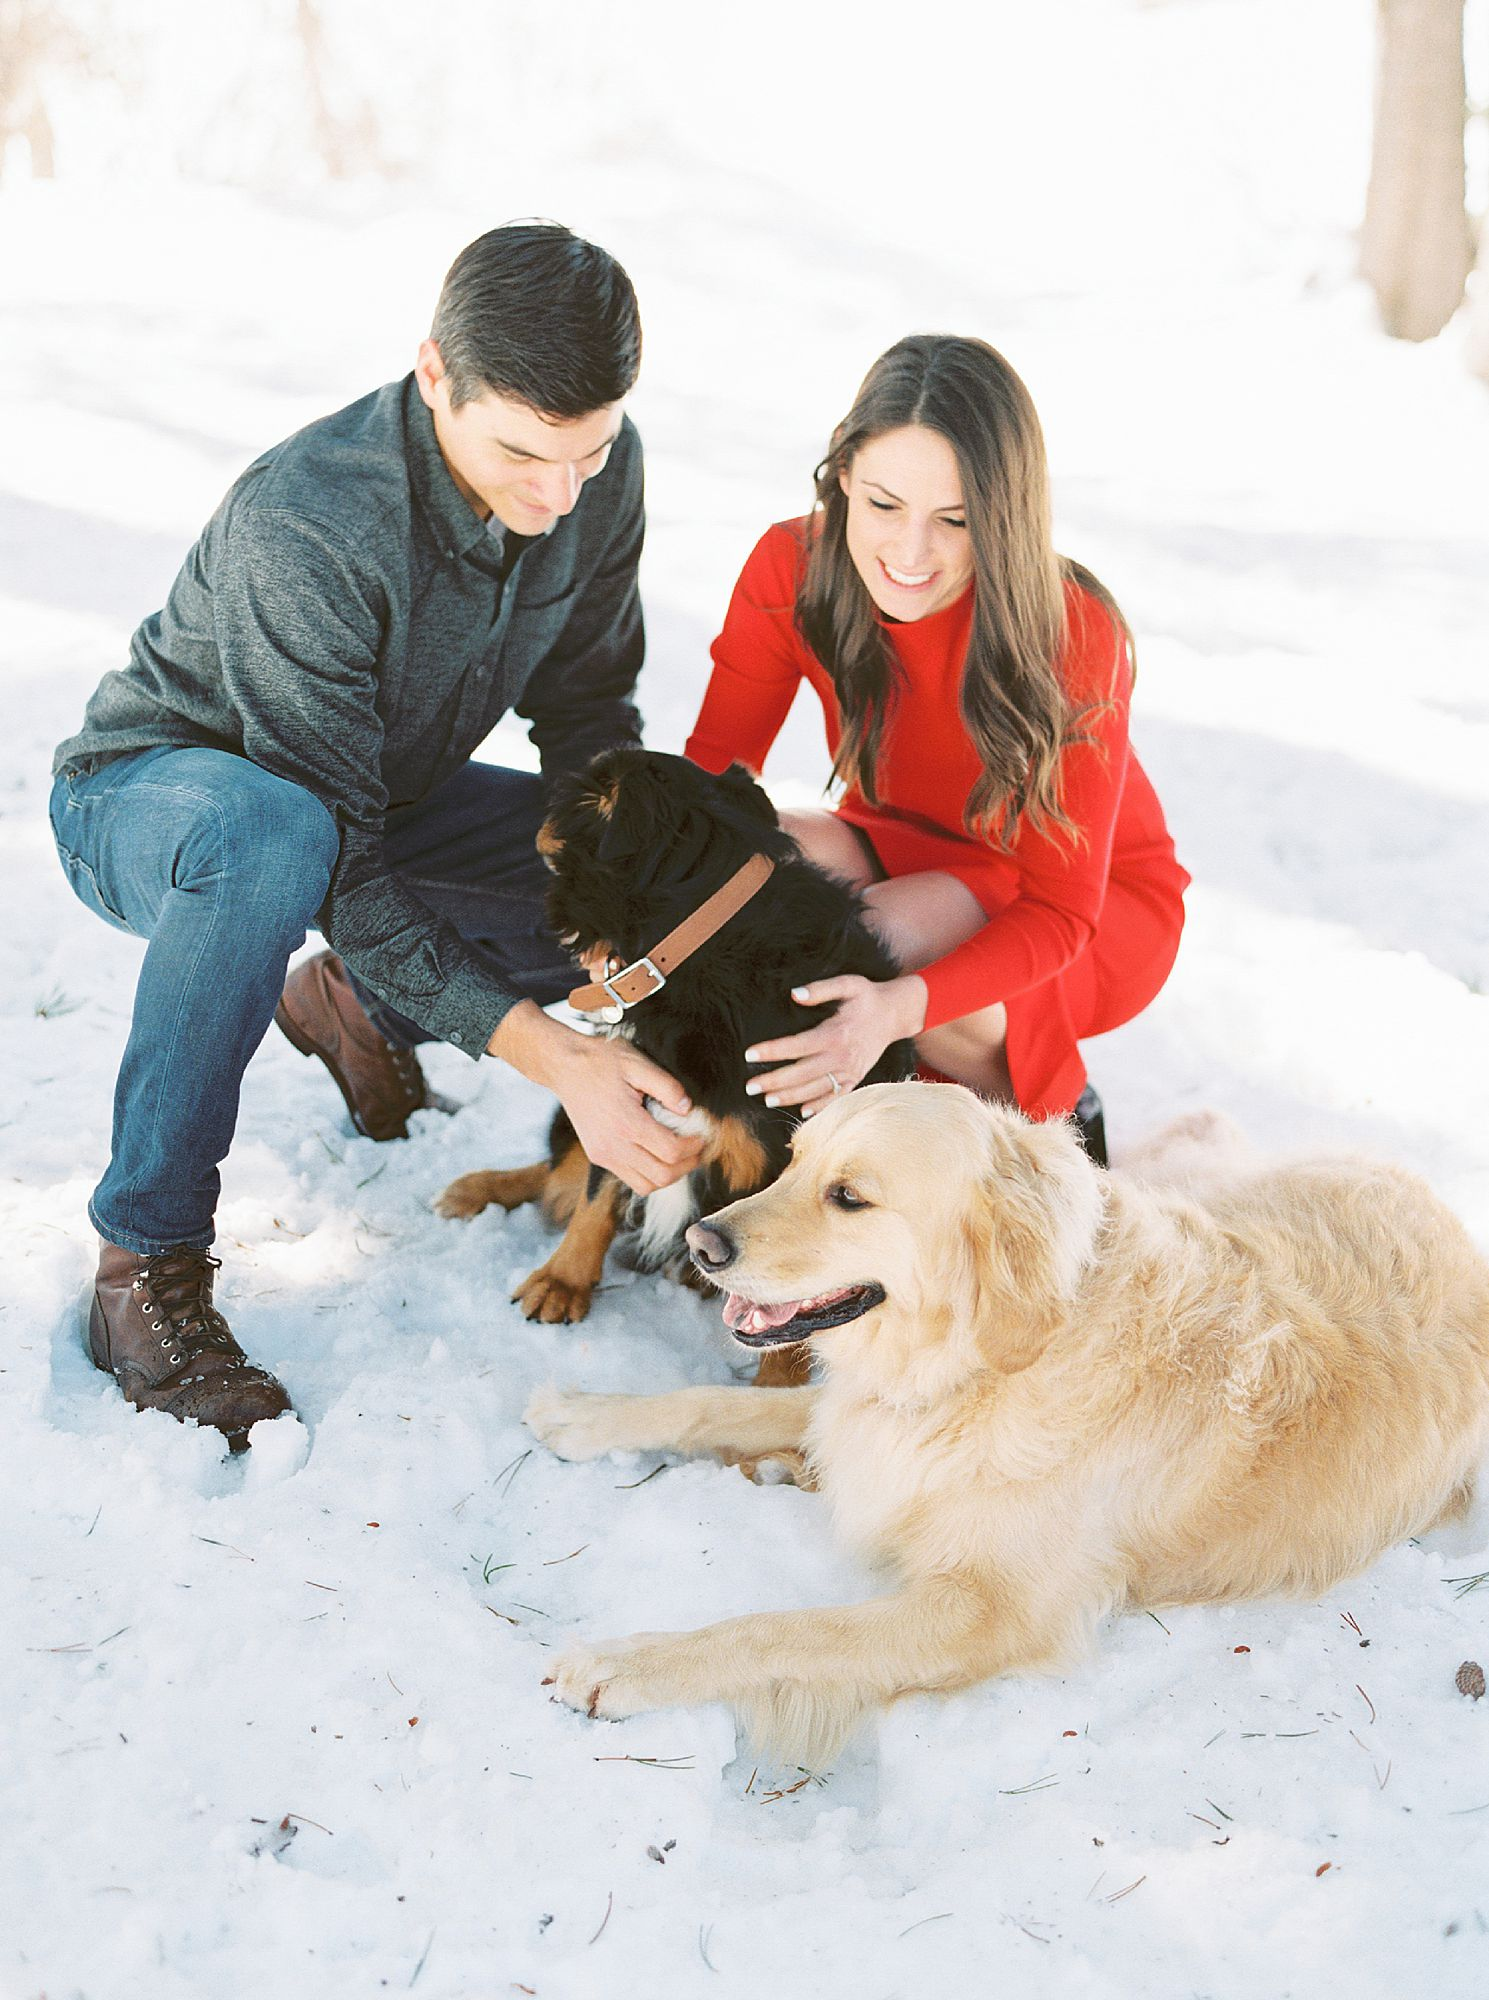 Snowy Tahoe Engagement Session - Alex and Kevin - Ashley Baumgartner - Tahoe Engagement Session - Tahoe Wedding Photographer - Tahoe Engagement Photos - Snow Engagement Photos_0034.jpg